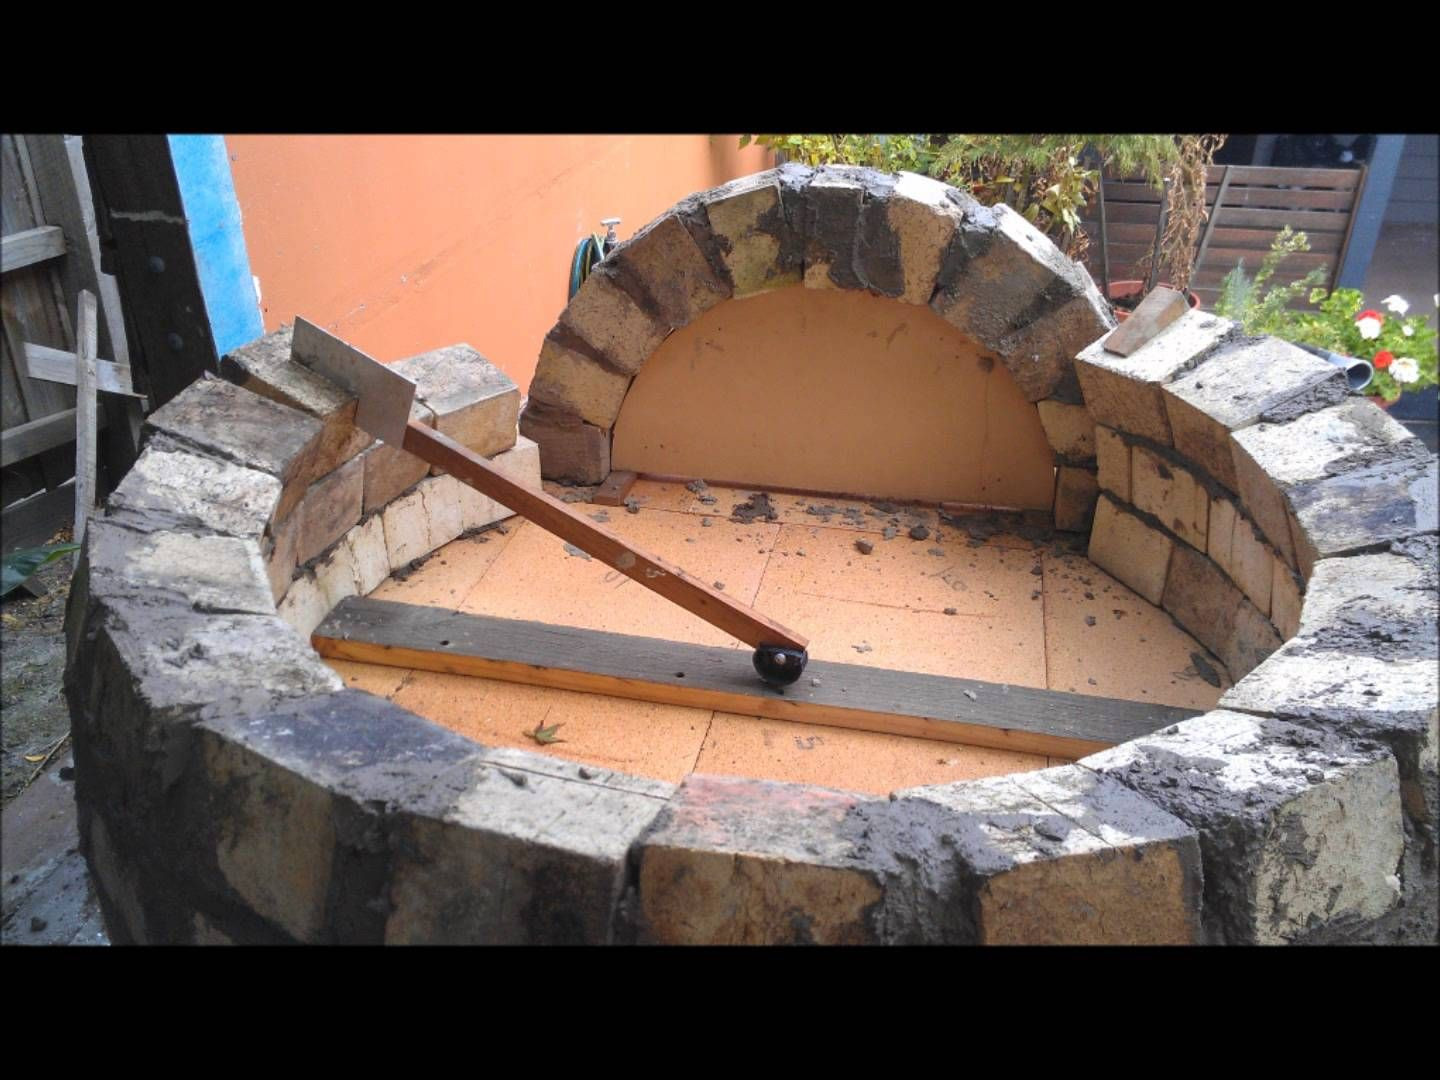 Best ideas about DIY Wood Fired Oven . Save or Pin How to build a wood fired pizza bread oven Now.